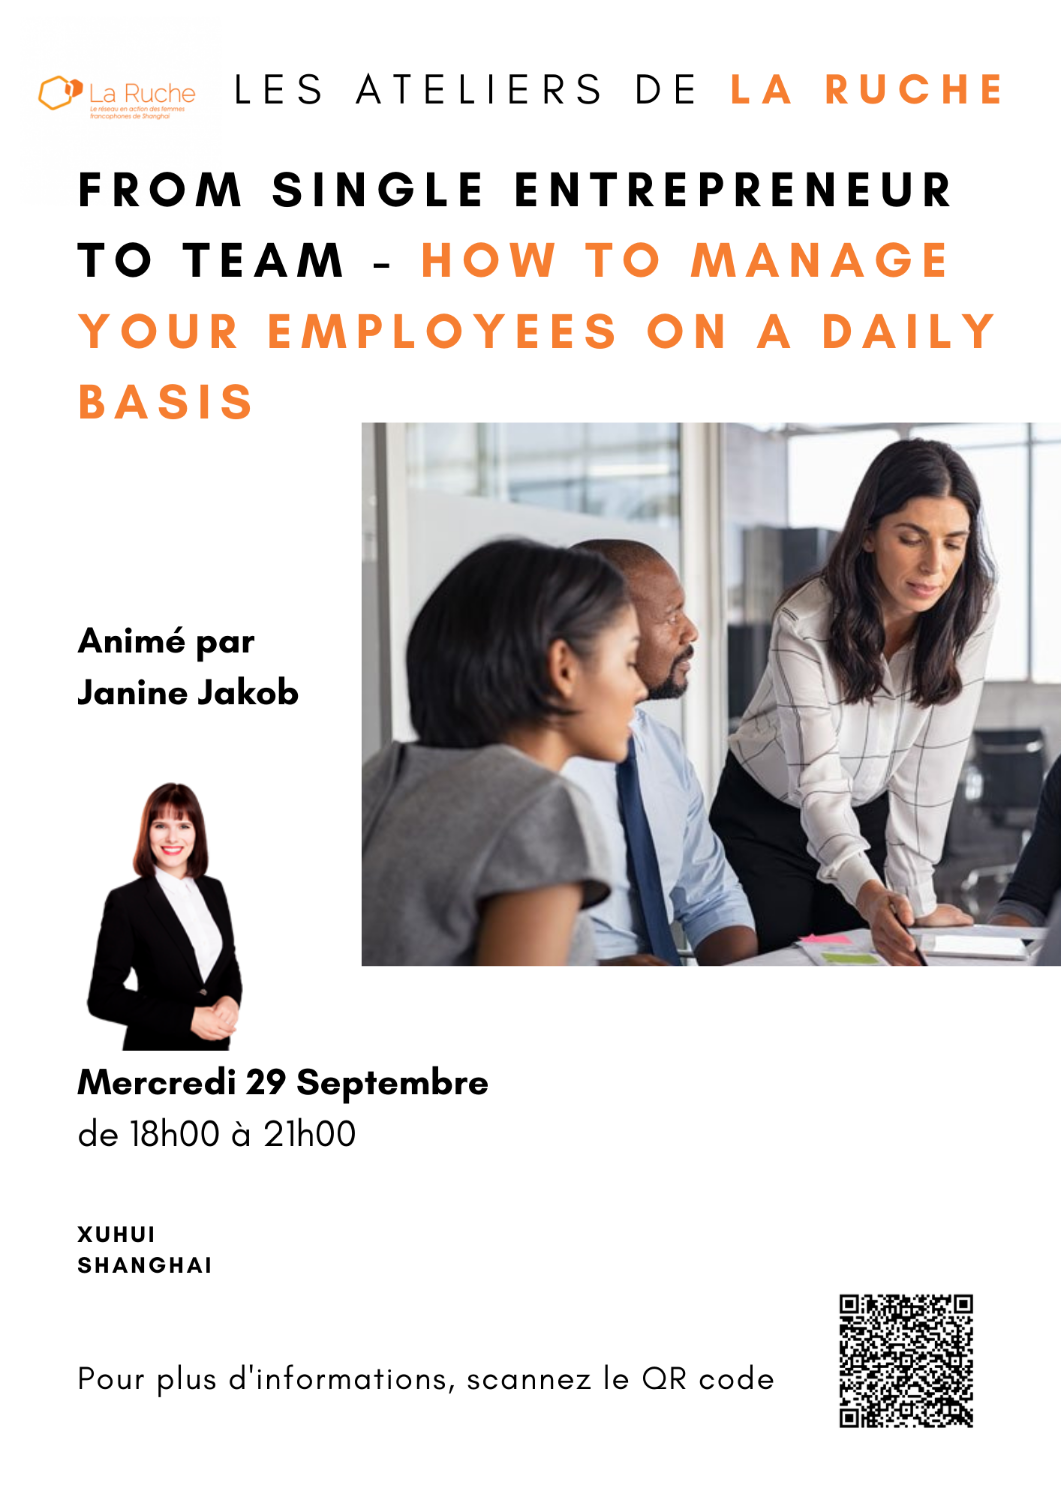 Mercredi 20 Octobre - From single entrepreneur to team - How to manage your employees on a daily basis